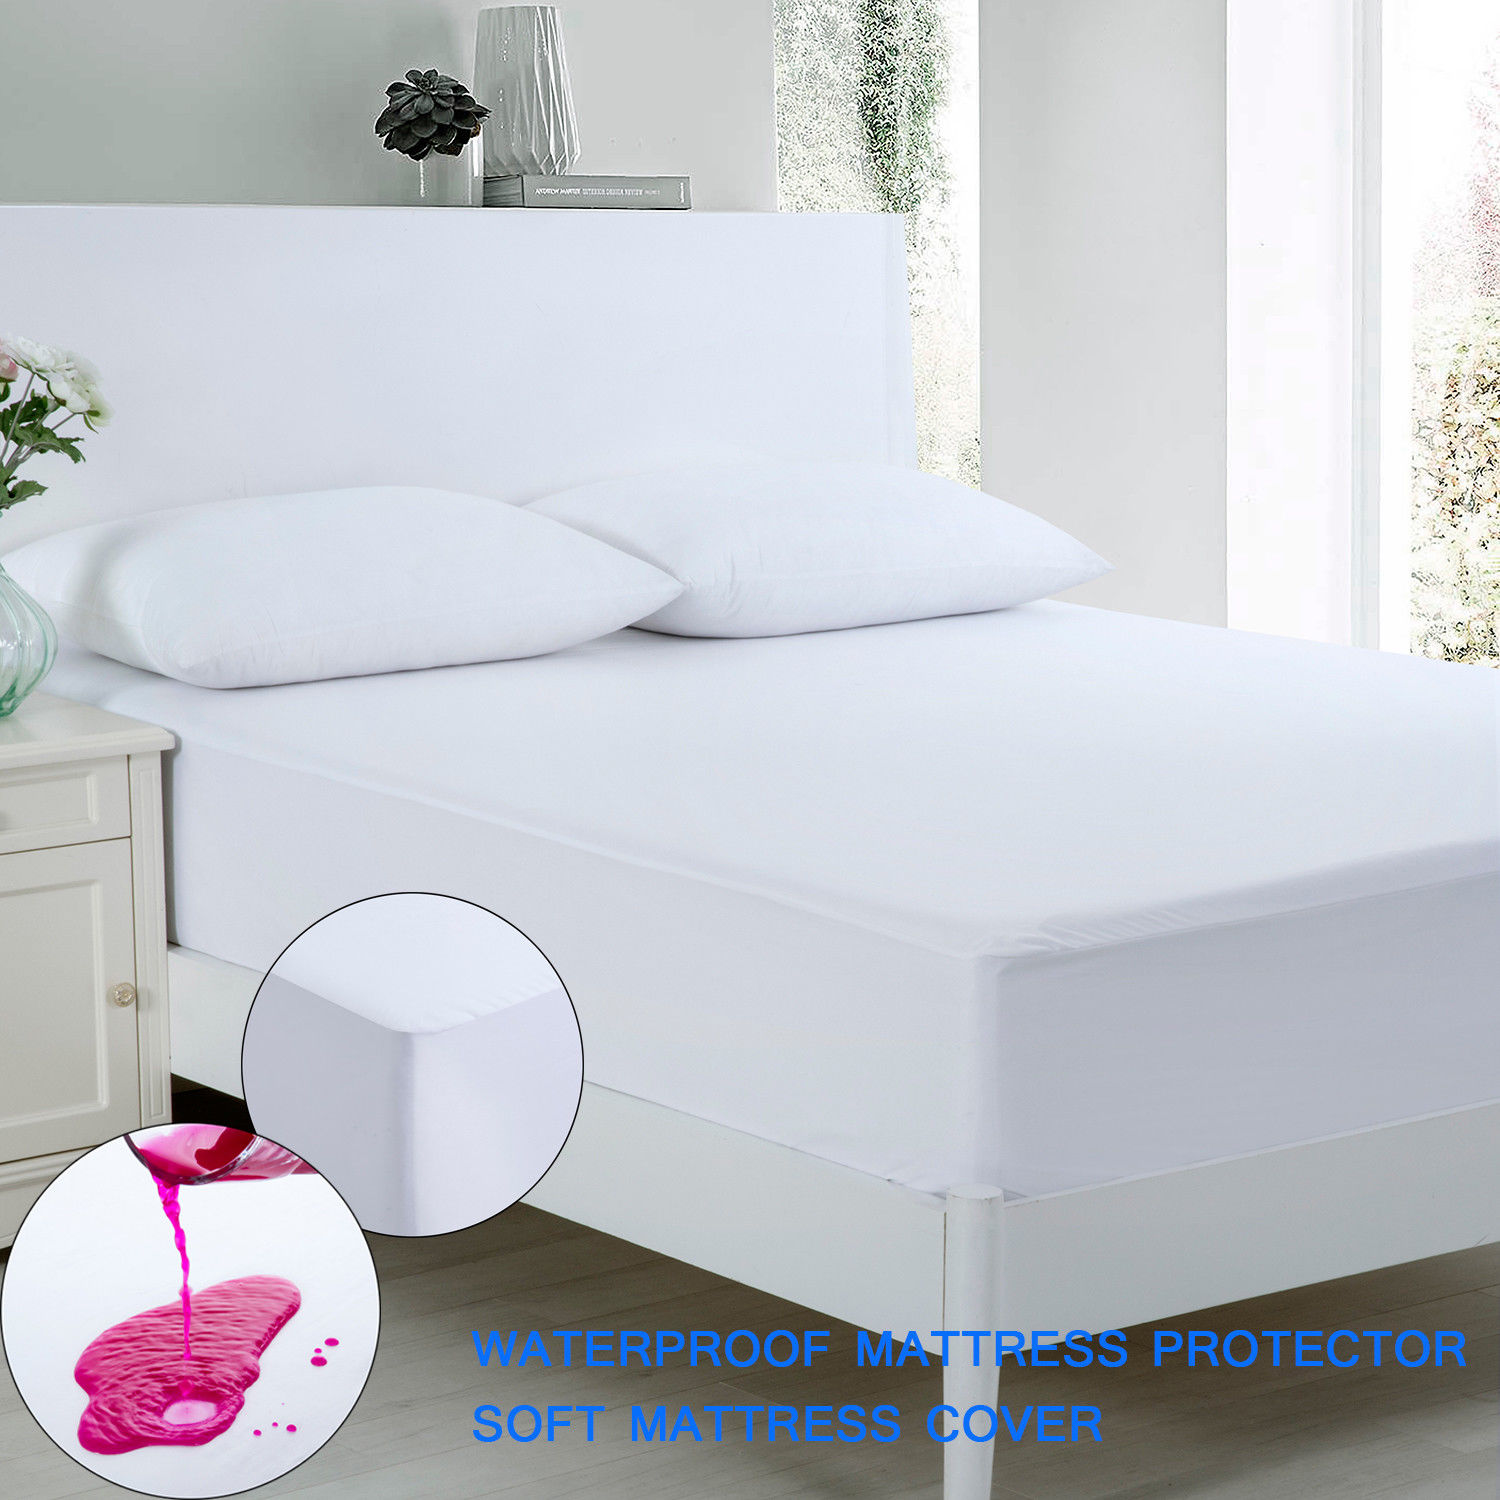 anti allergy 100 waterproof mattress protector cover twin. Black Bedroom Furniture Sets. Home Design Ideas